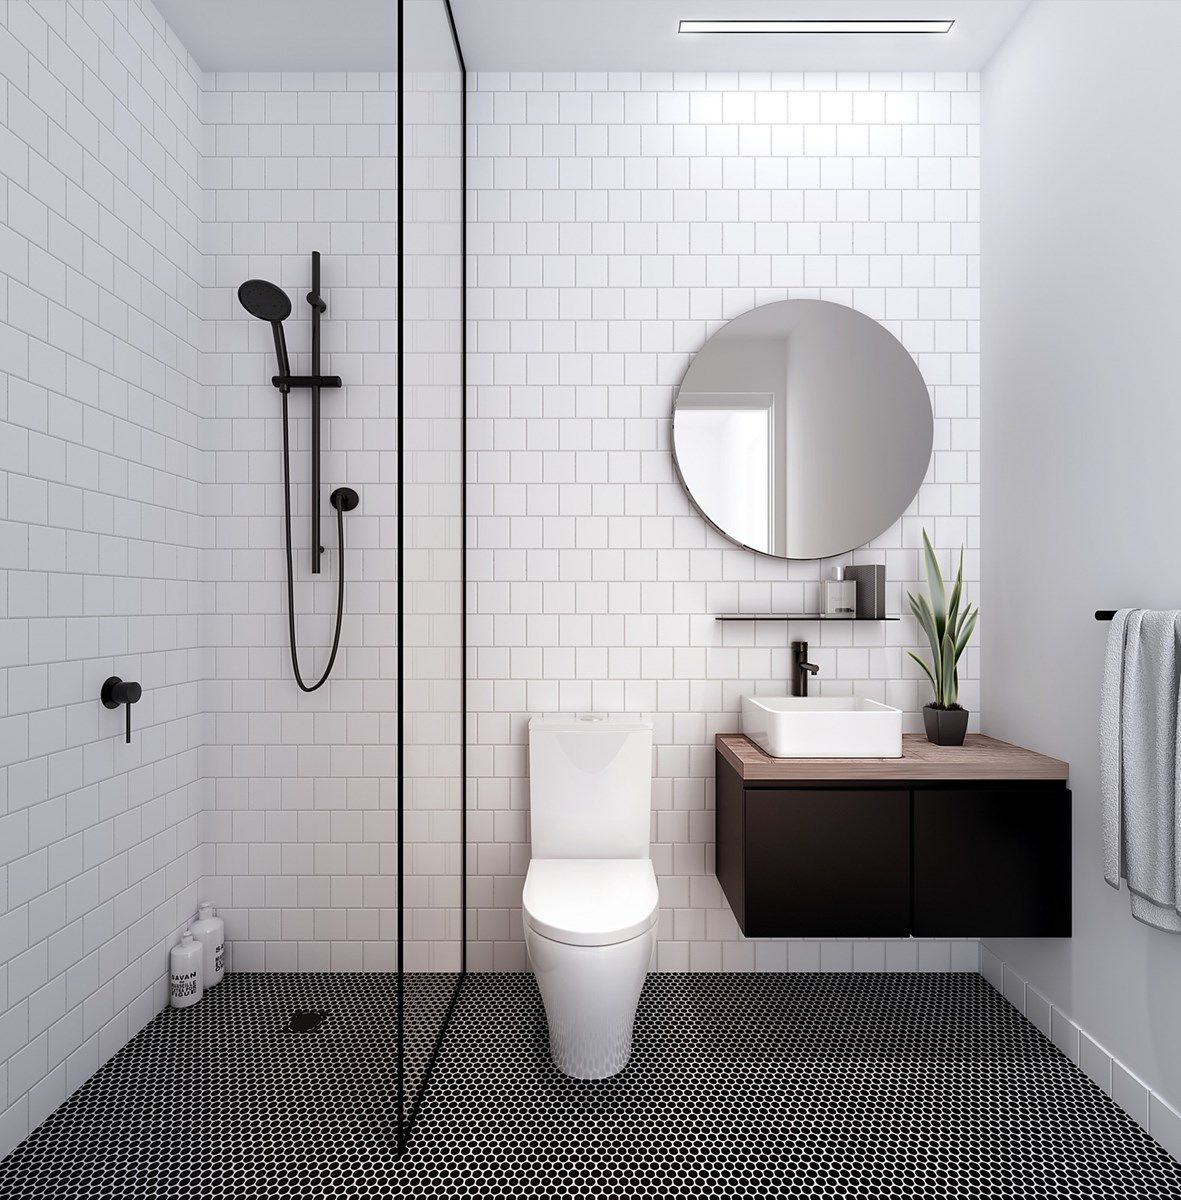 Toilet And Bathroom Designs Tiles 2 & 31113 St Georges Grove Parkville Vic 3052